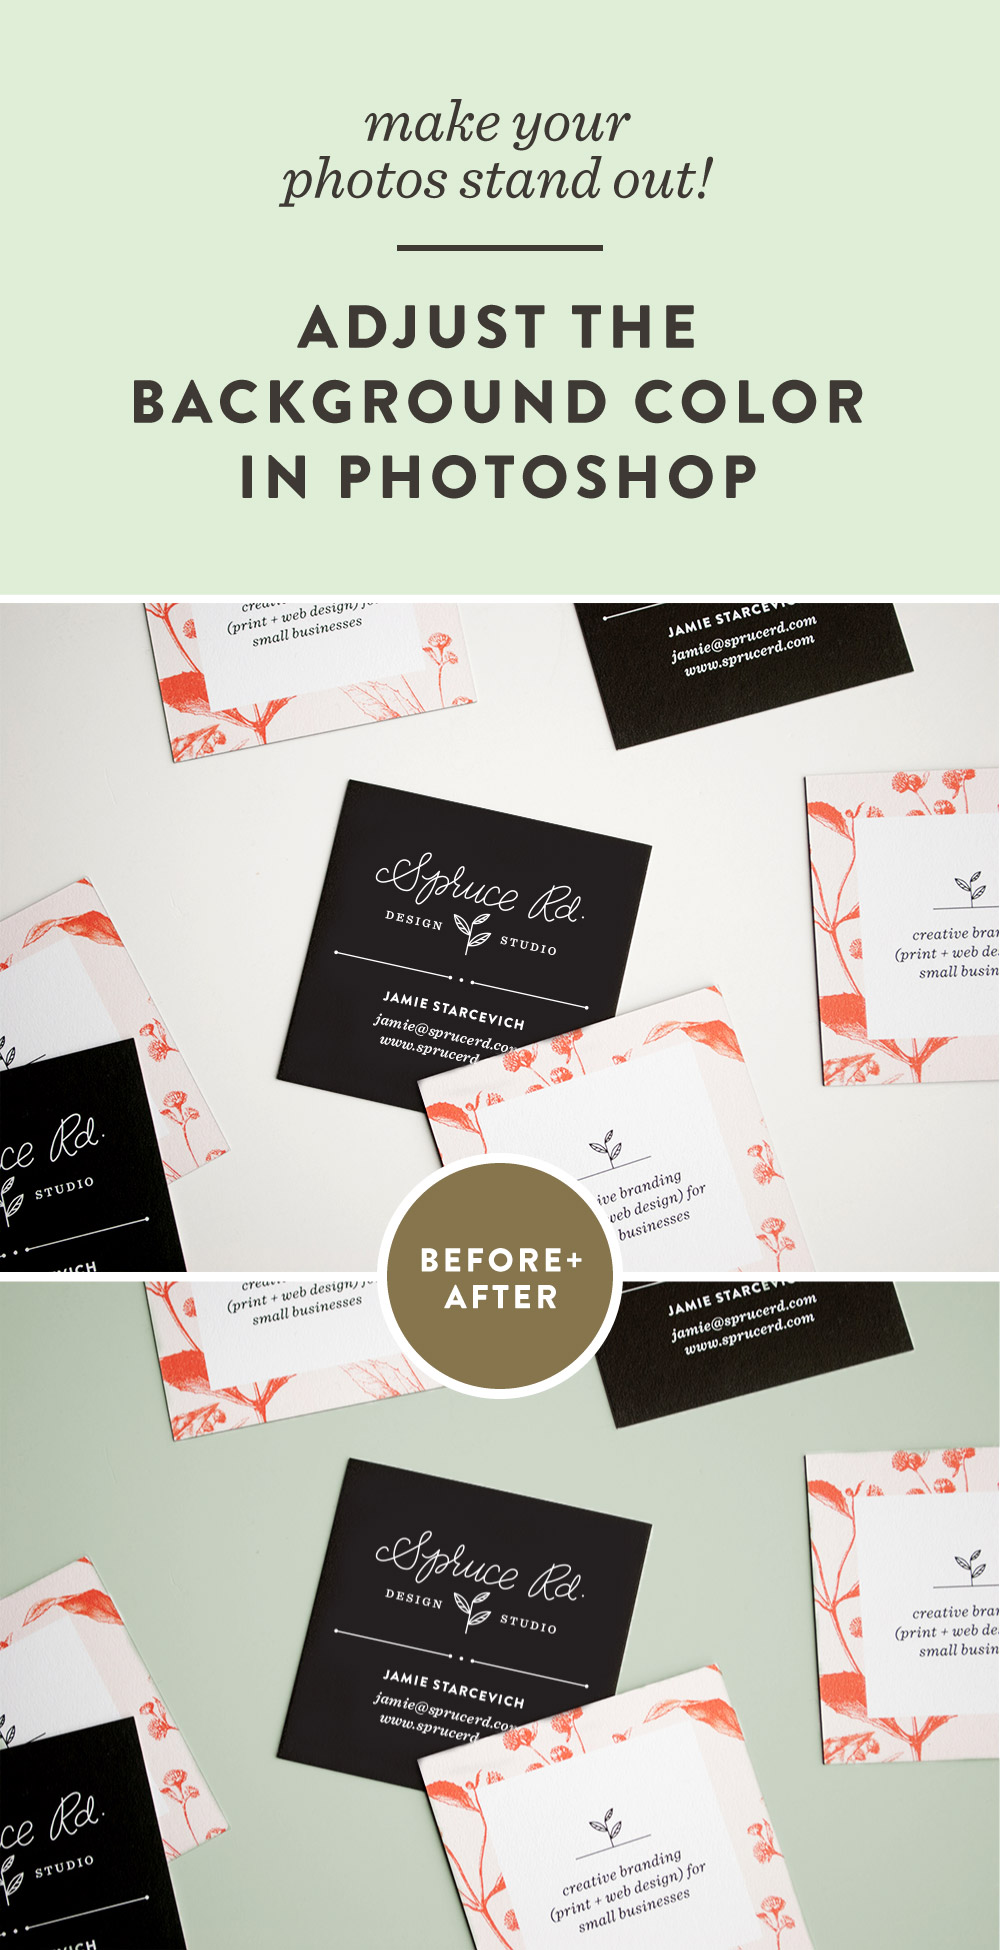 One easy step to make your photos stand out | Spruce Rd. #freelance #design #designresource